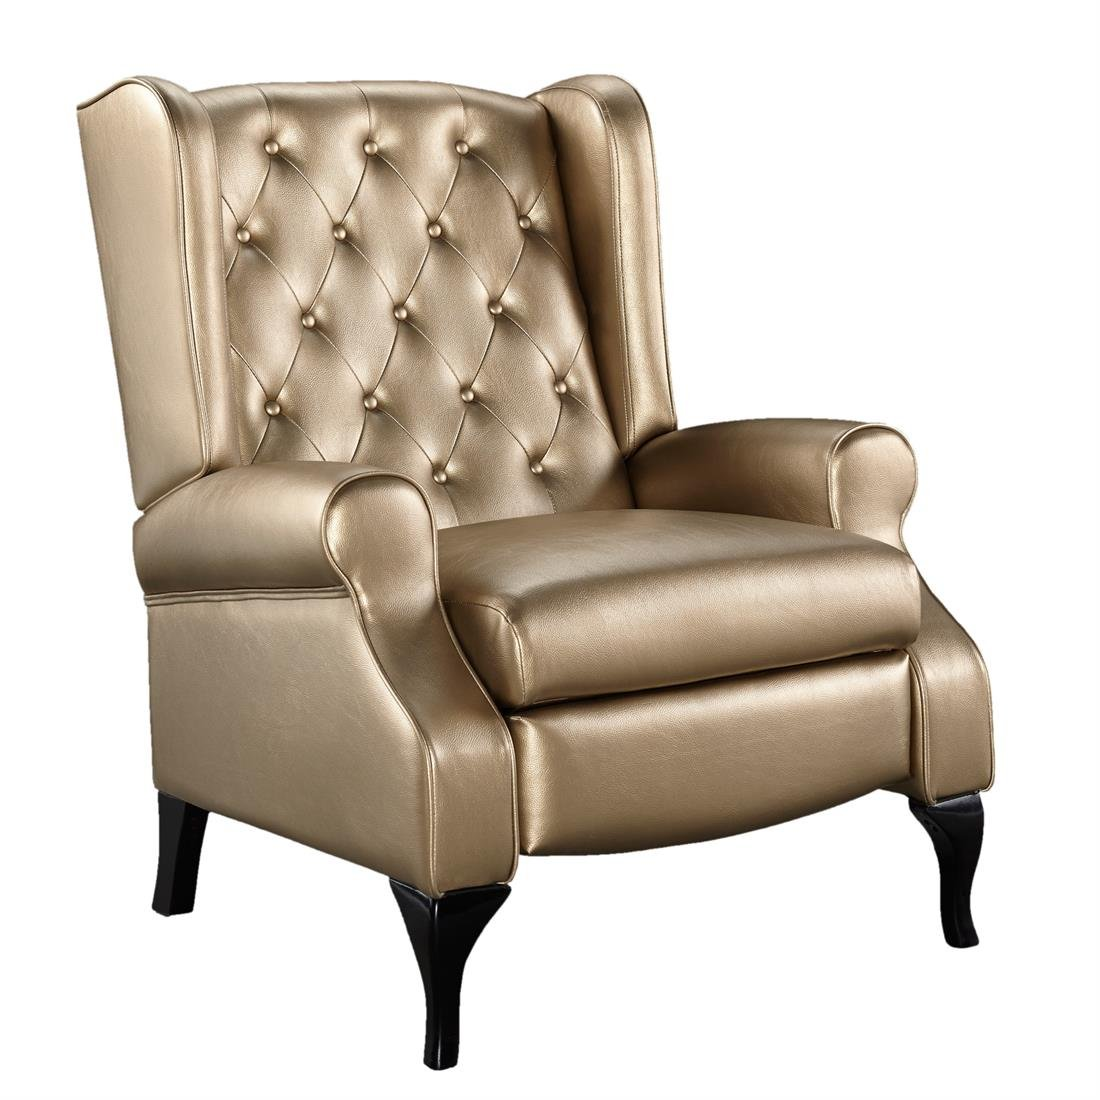 Brylanehome Cecilia Recliner (Metallic Gold,0)